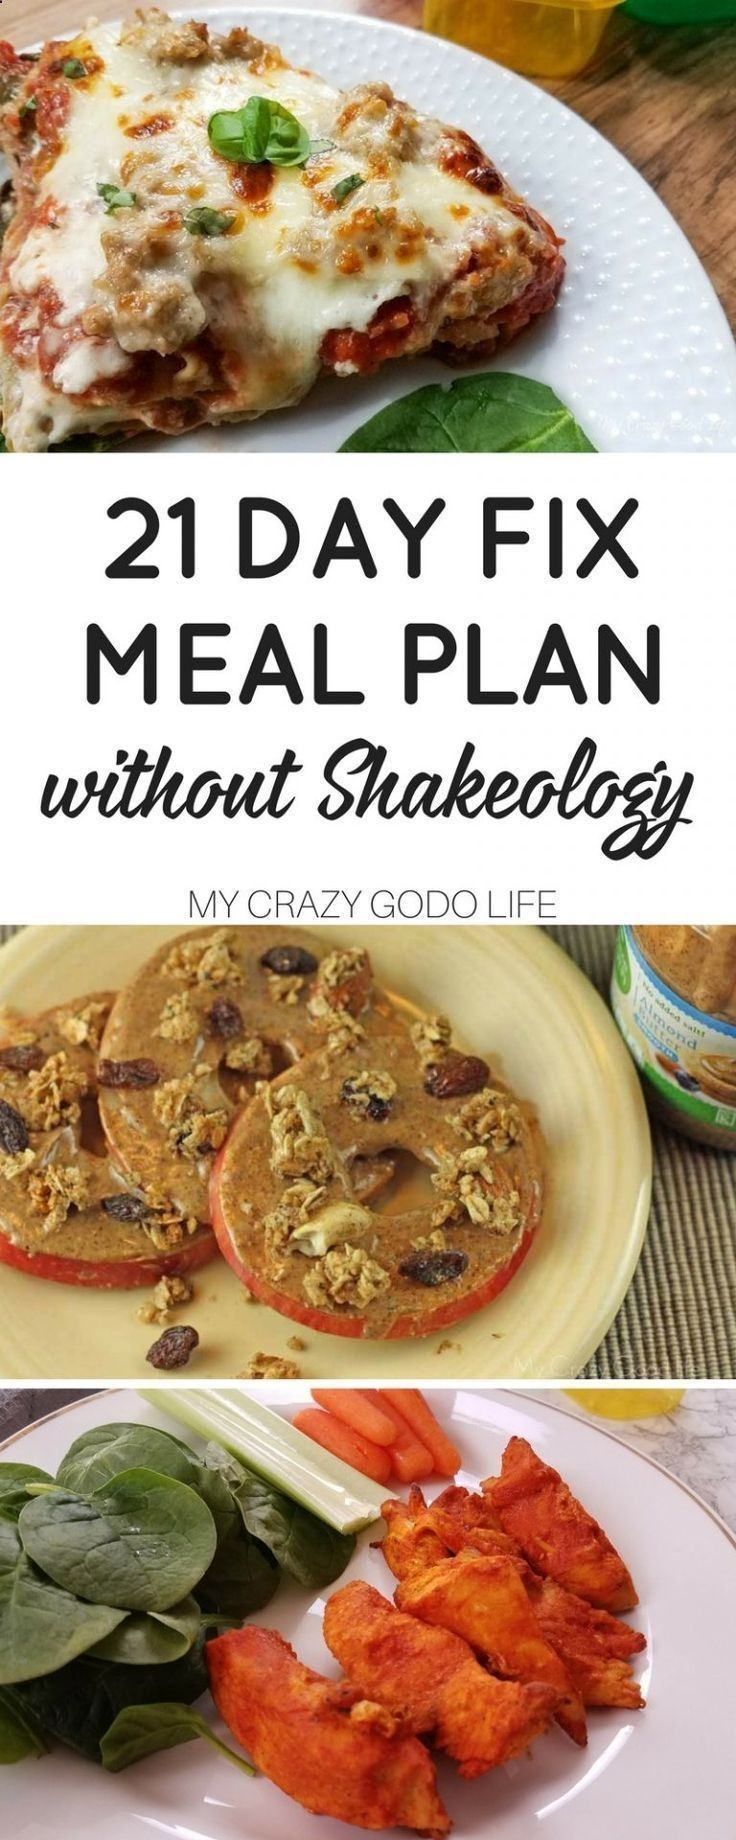 If you are not a fan of Shakeology, you dont have to miss out on all the meal planning convenience. Here is a 21 Day Fix Meal Plan without Shakeology!